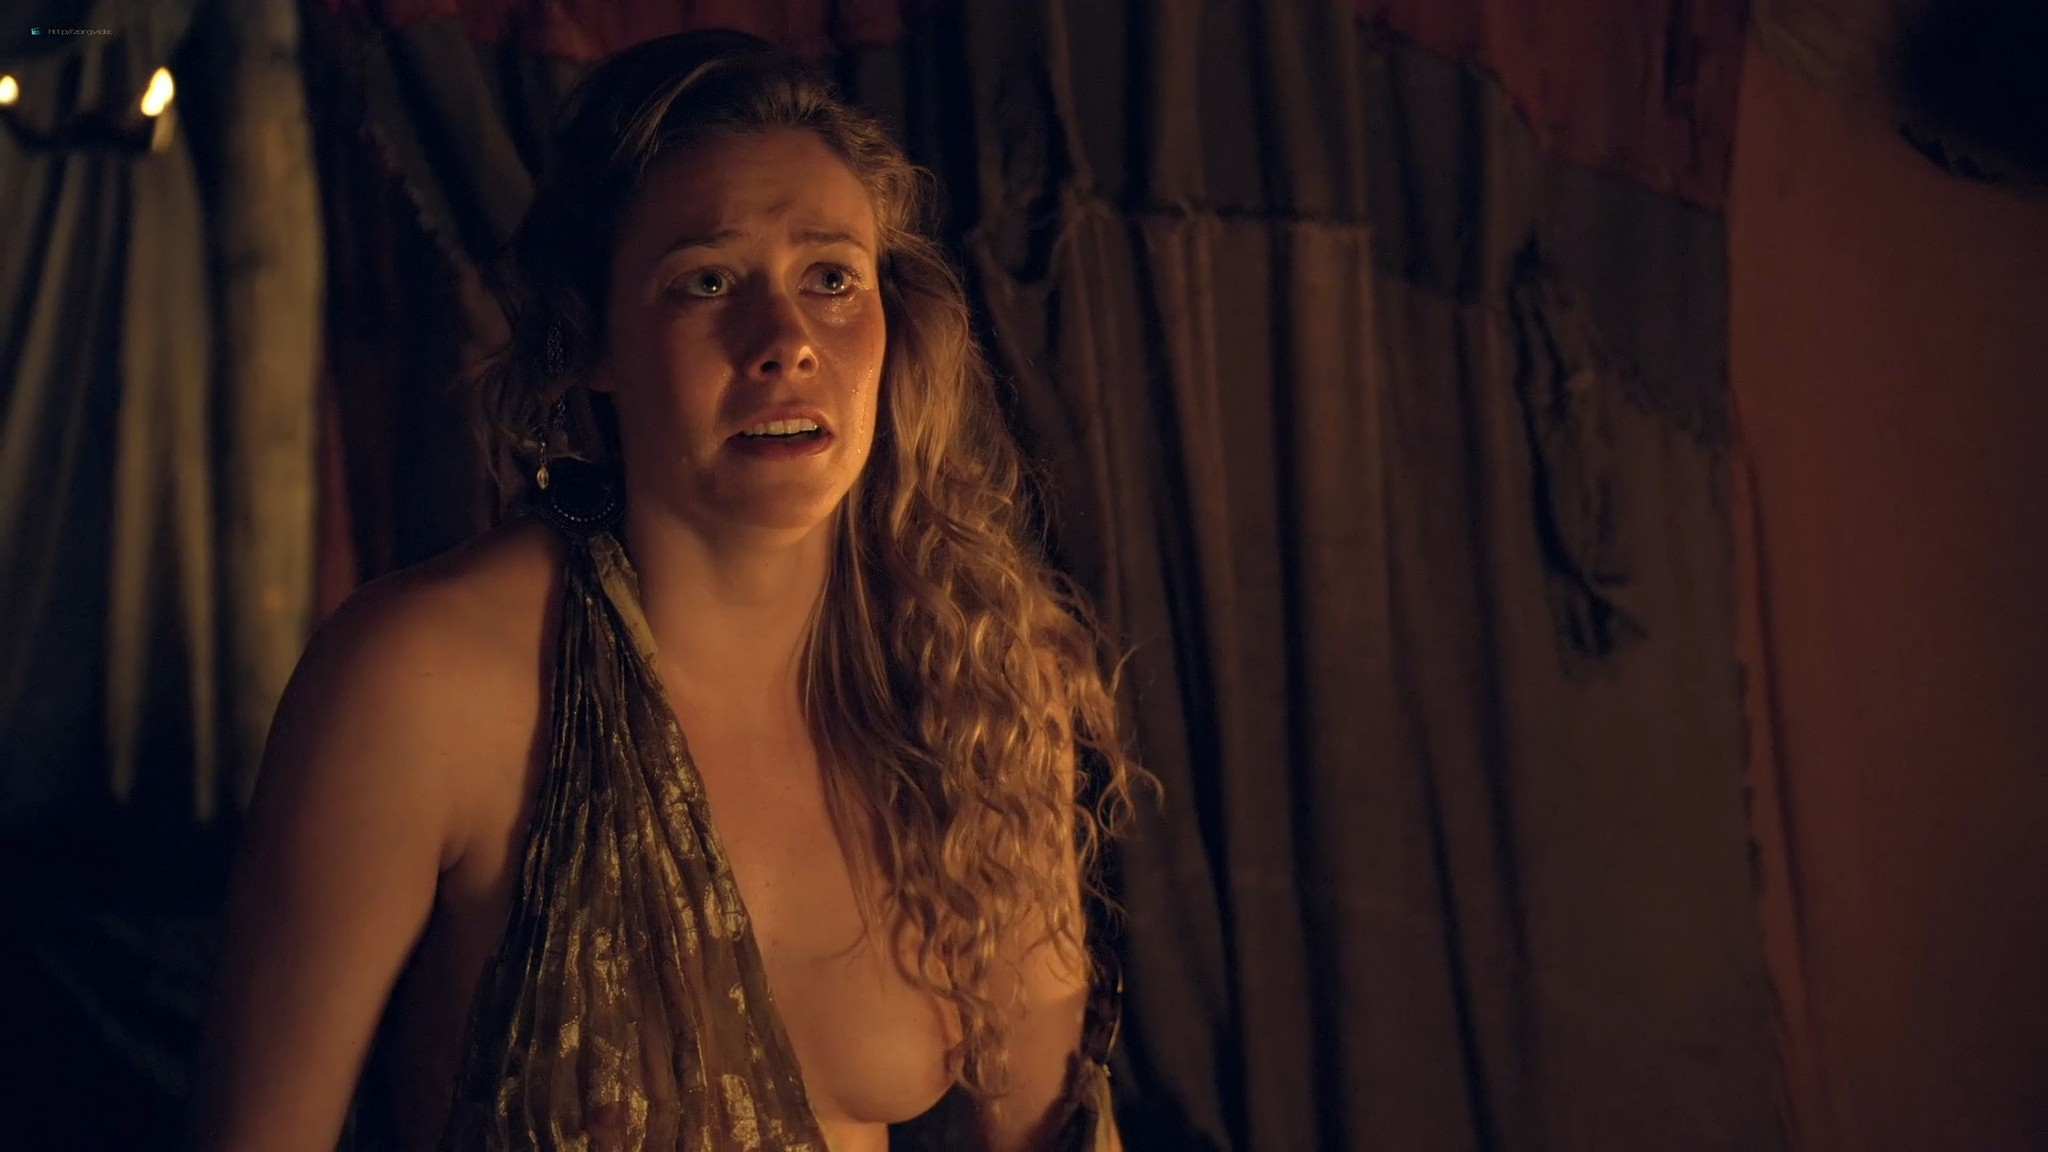 T Ann Robson nude full frontal Gwendoline Taylor nude too Spartacus 2013 s3e9 10 1080p BluRay 001